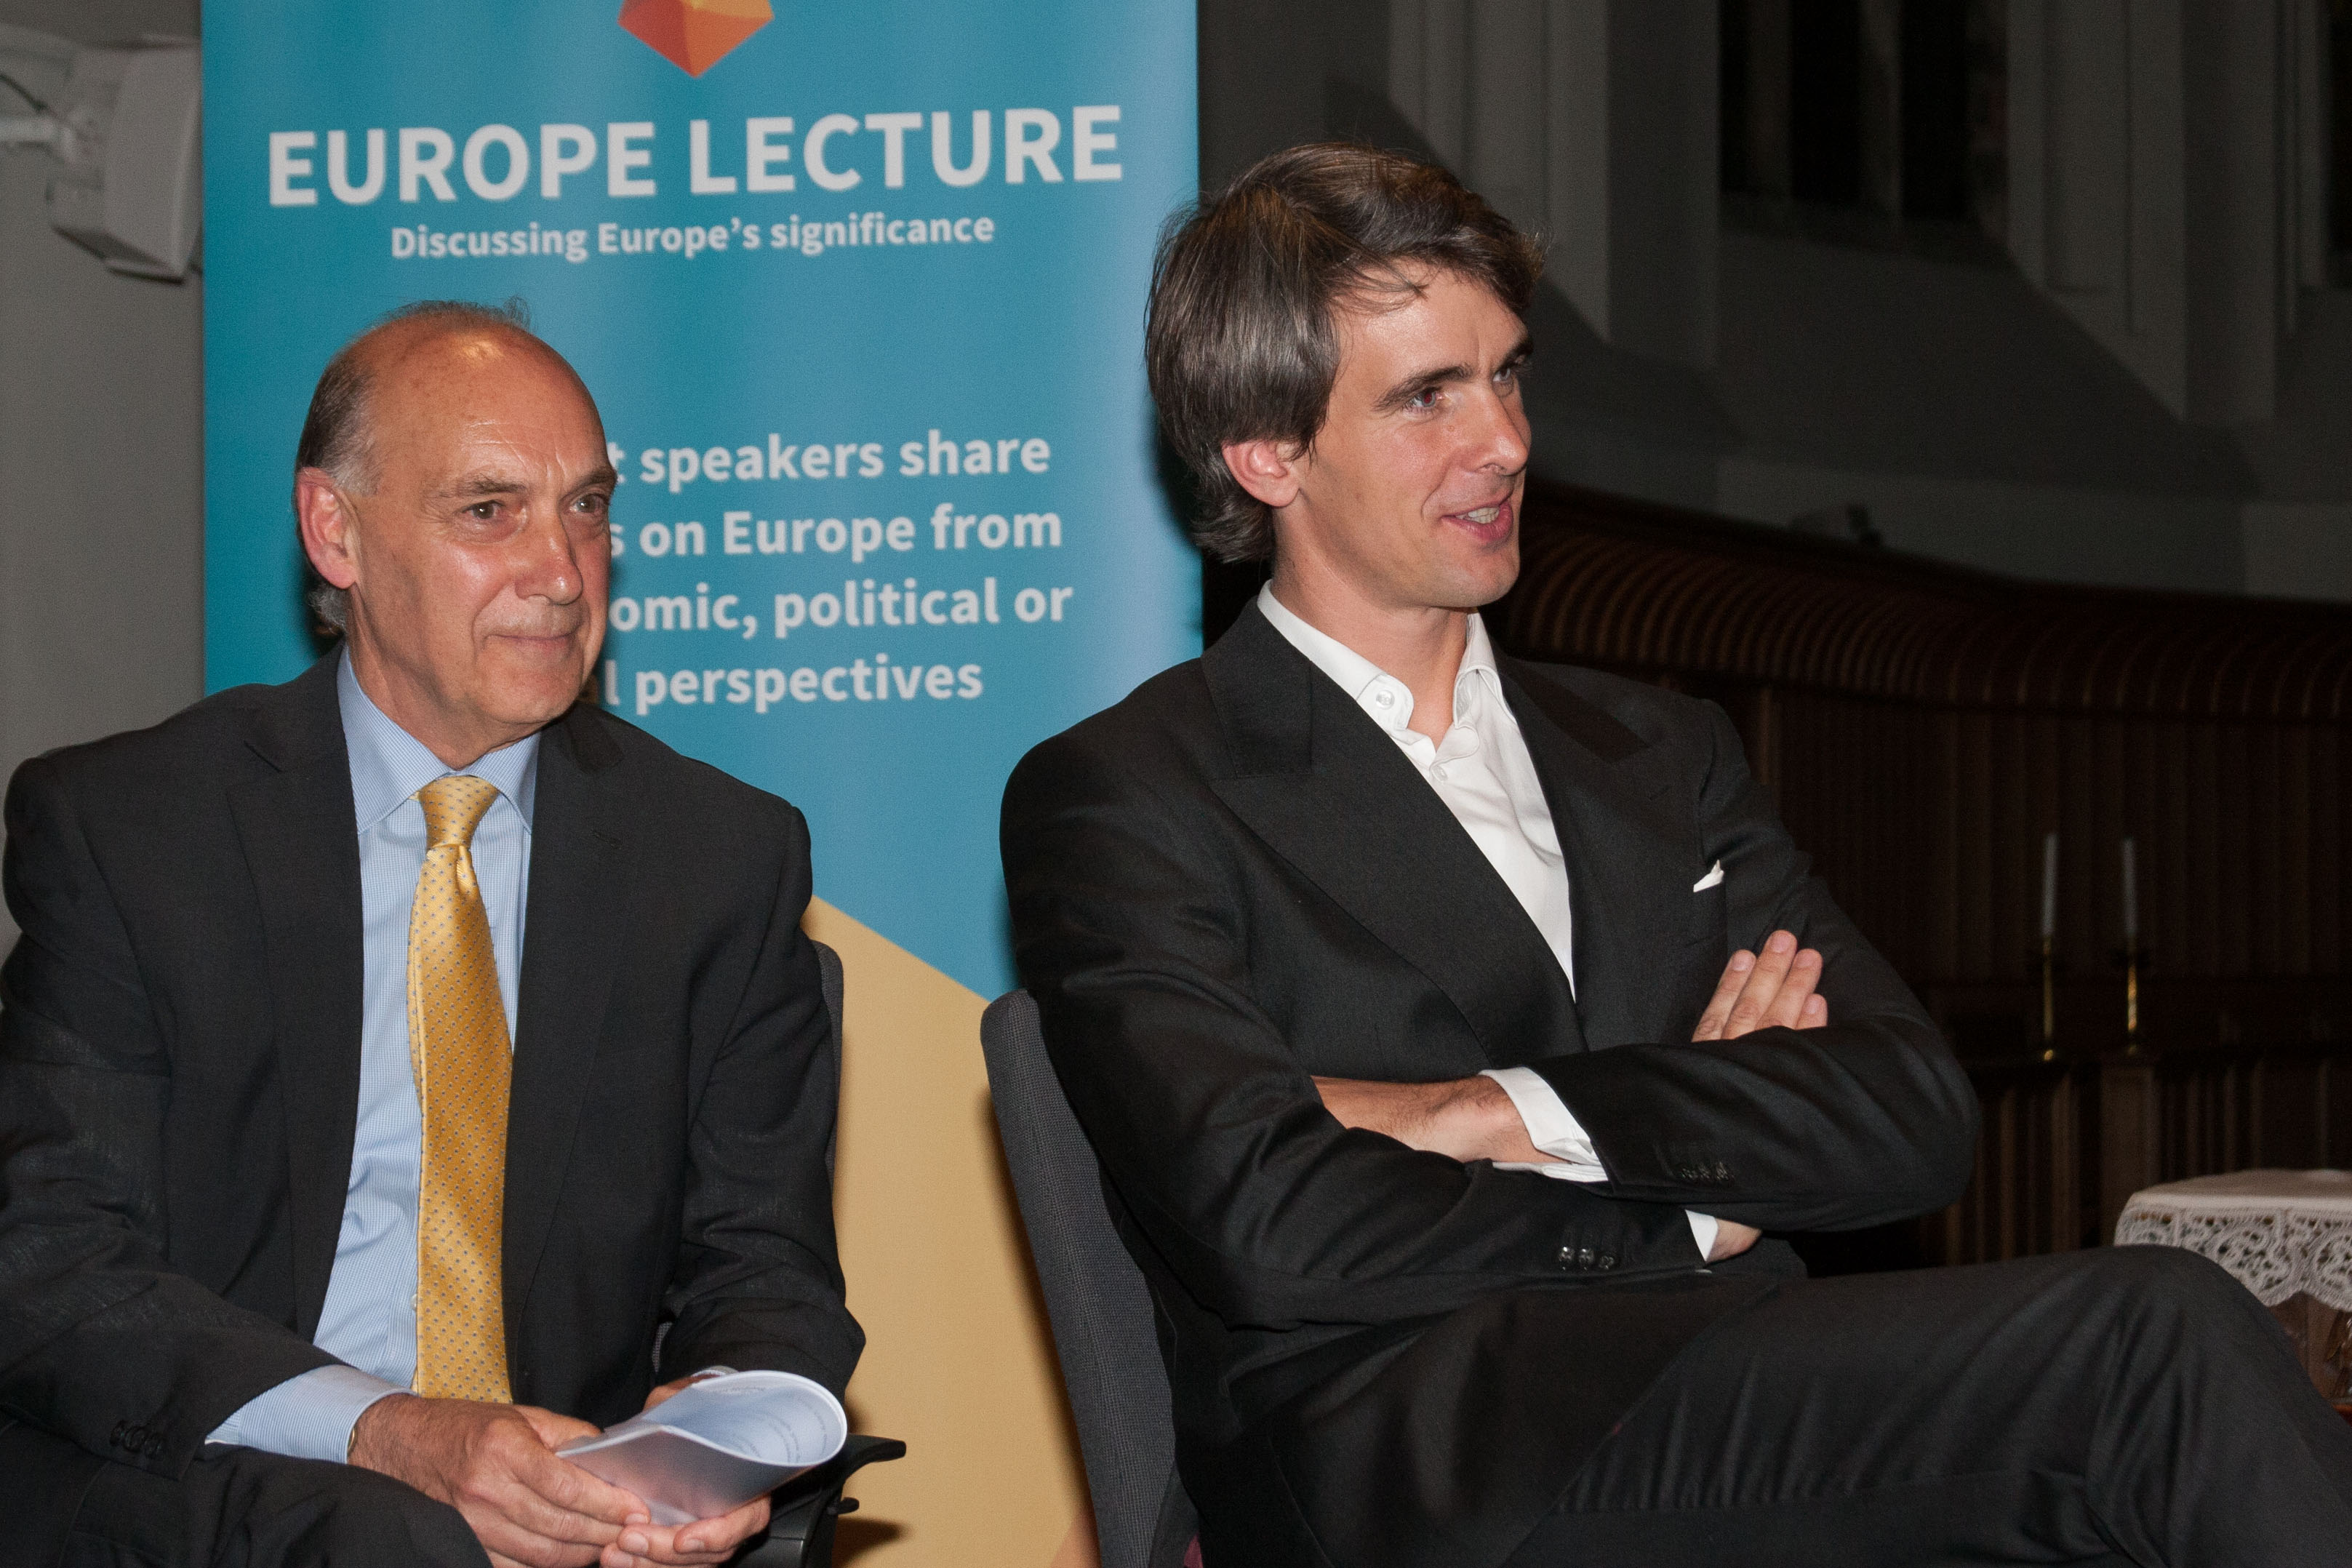 Europe Lecture - Peace and Security